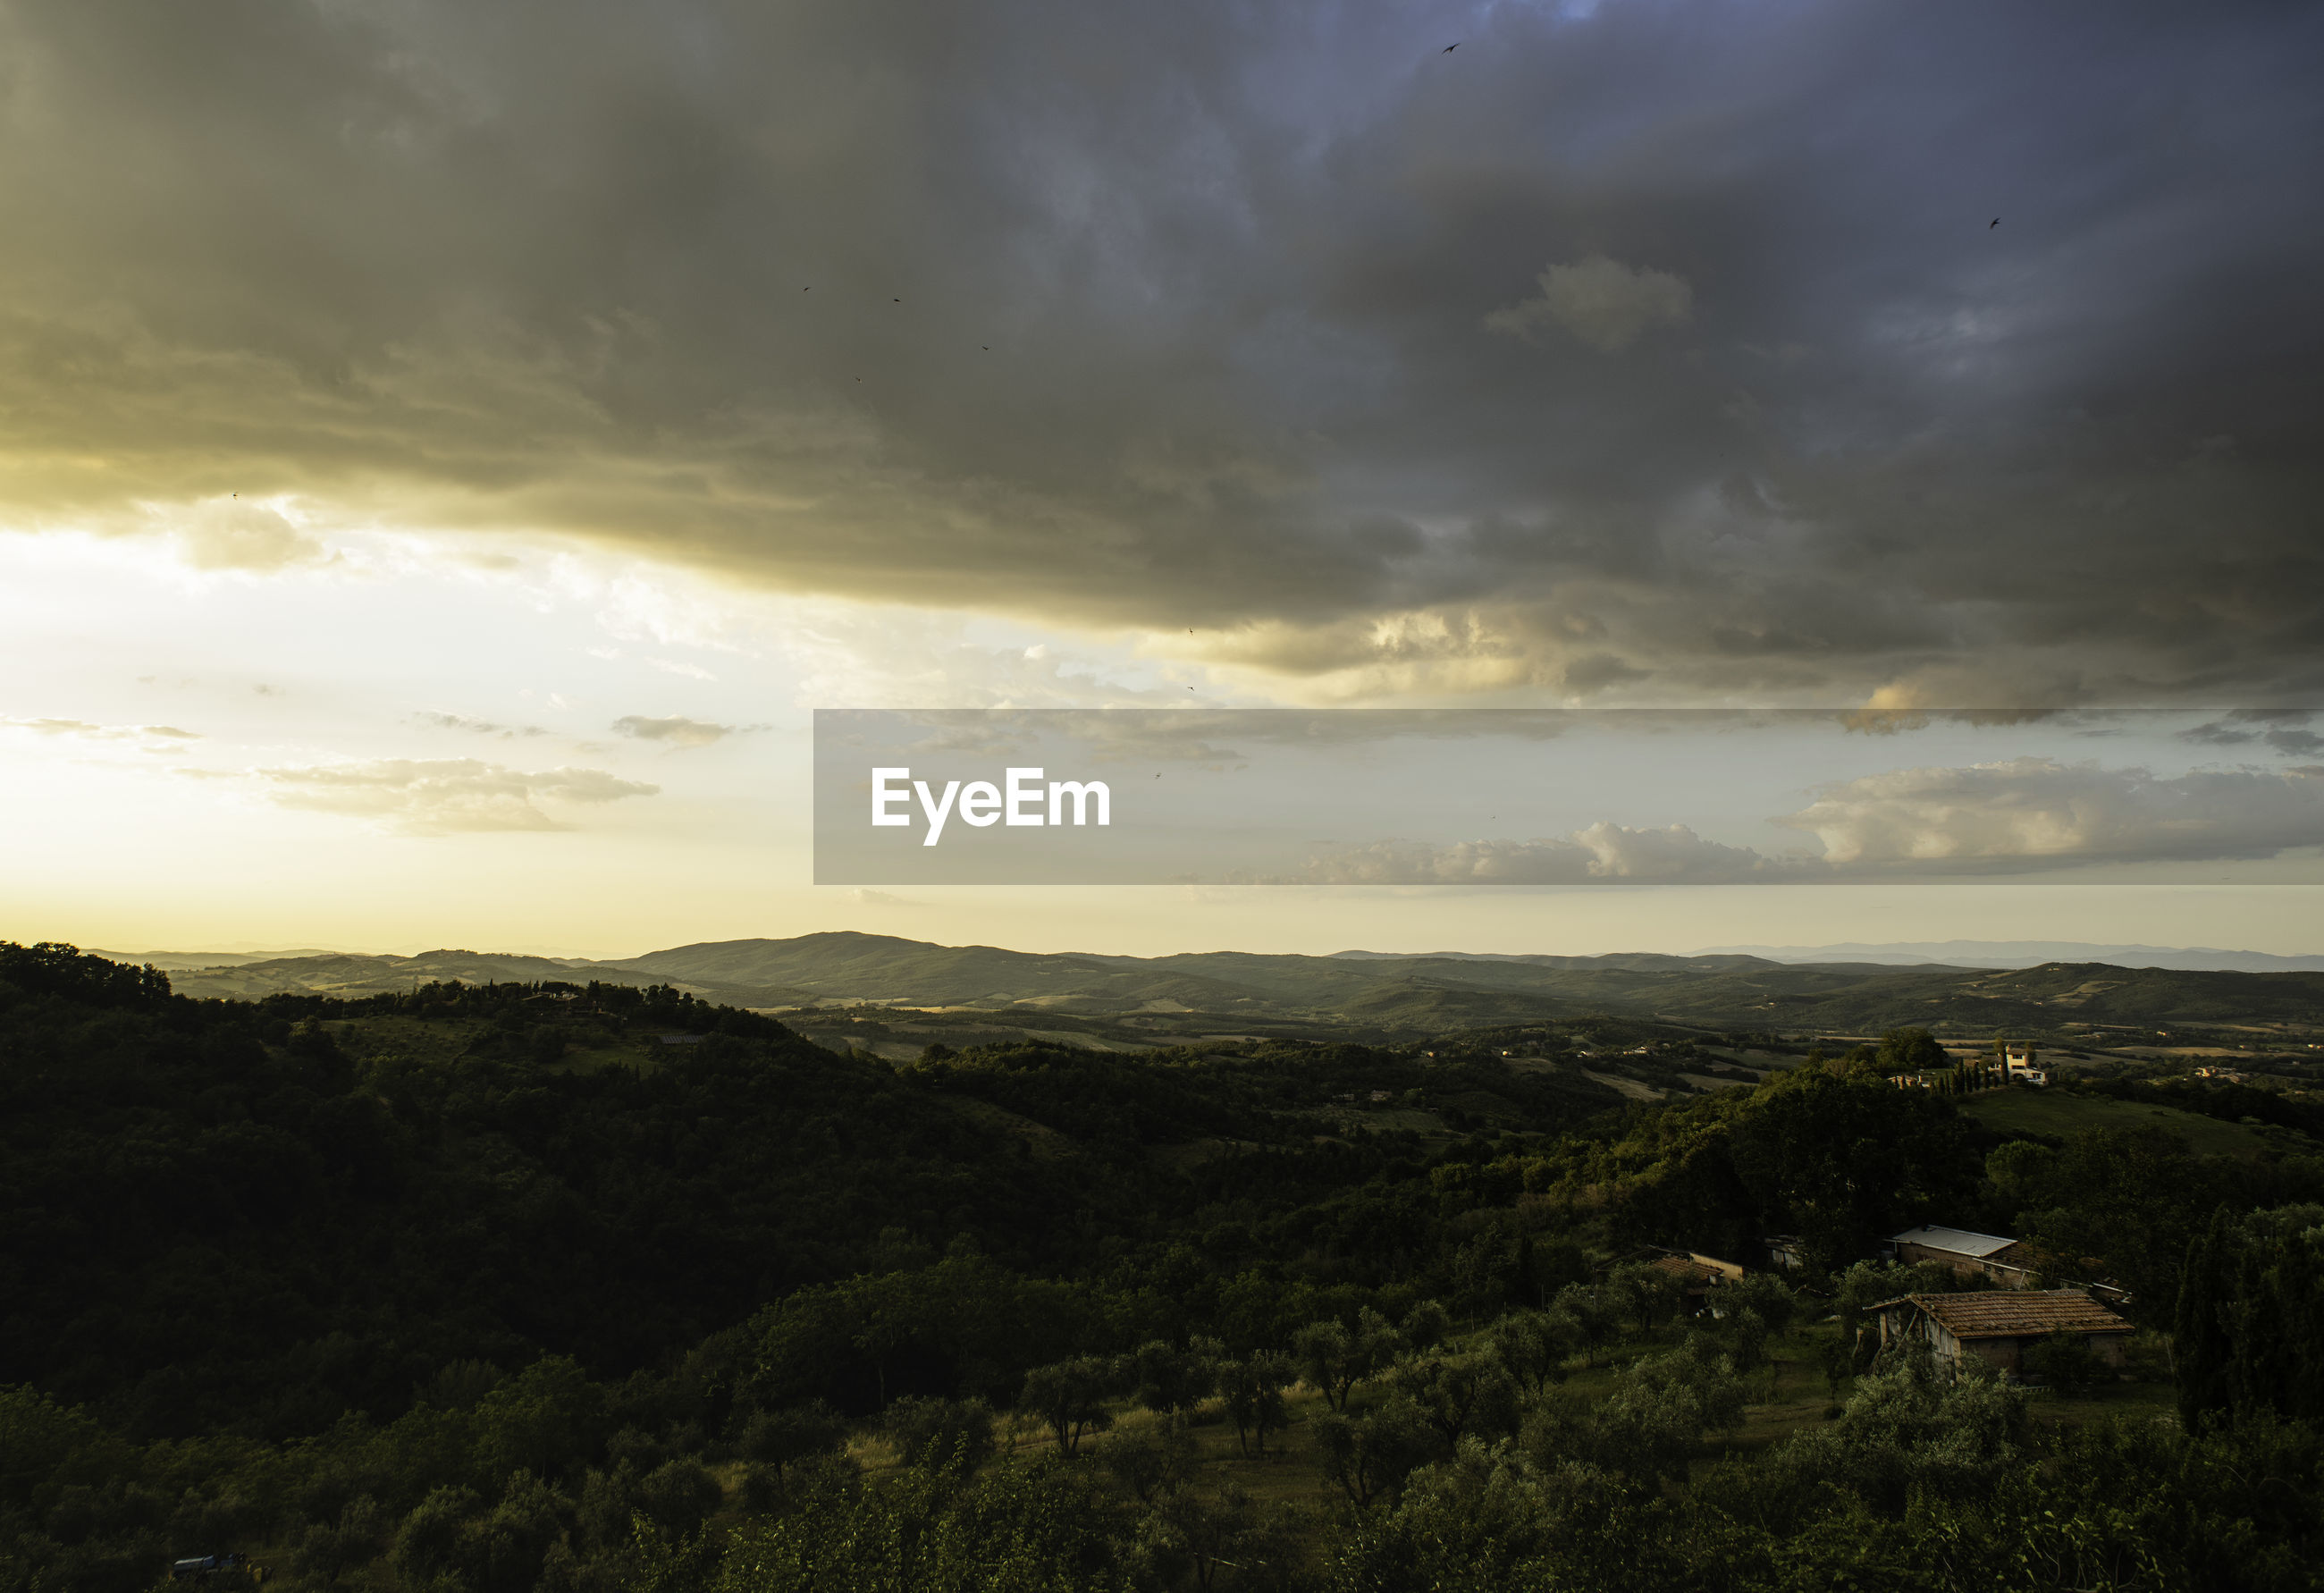 SCENIC VIEW OF LAND AGAINST SKY DURING SUNSET